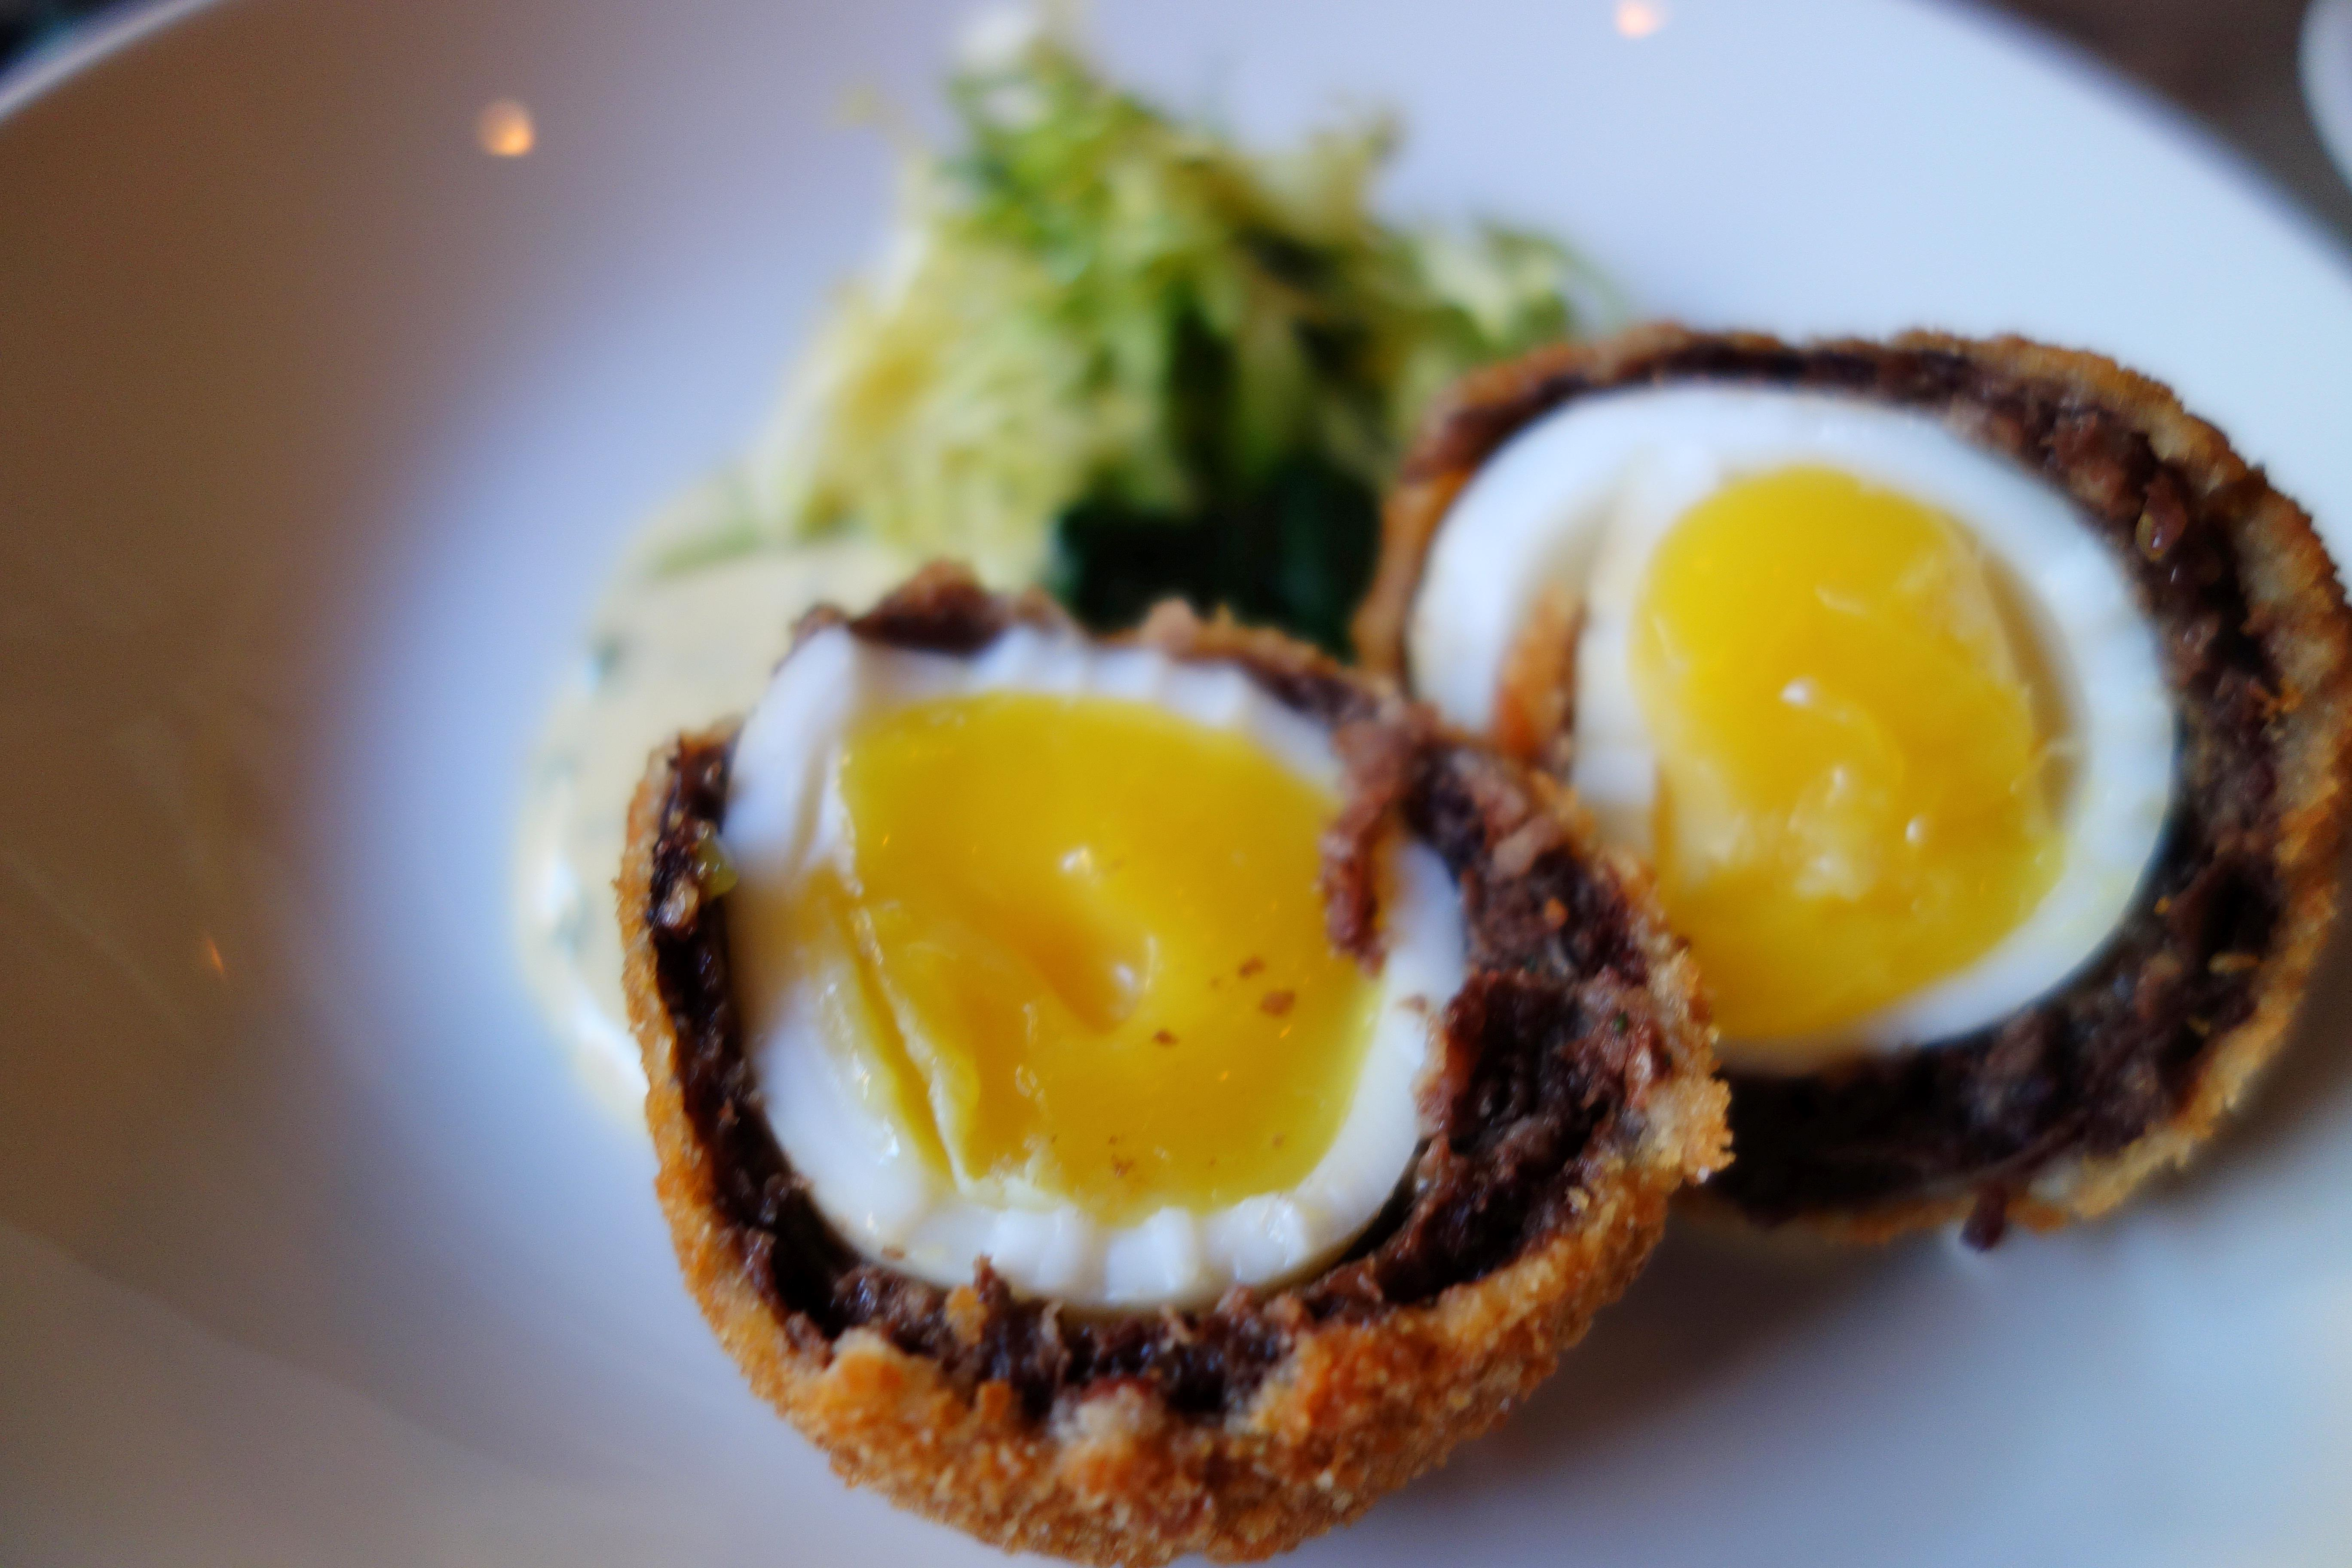 3Scotch egg